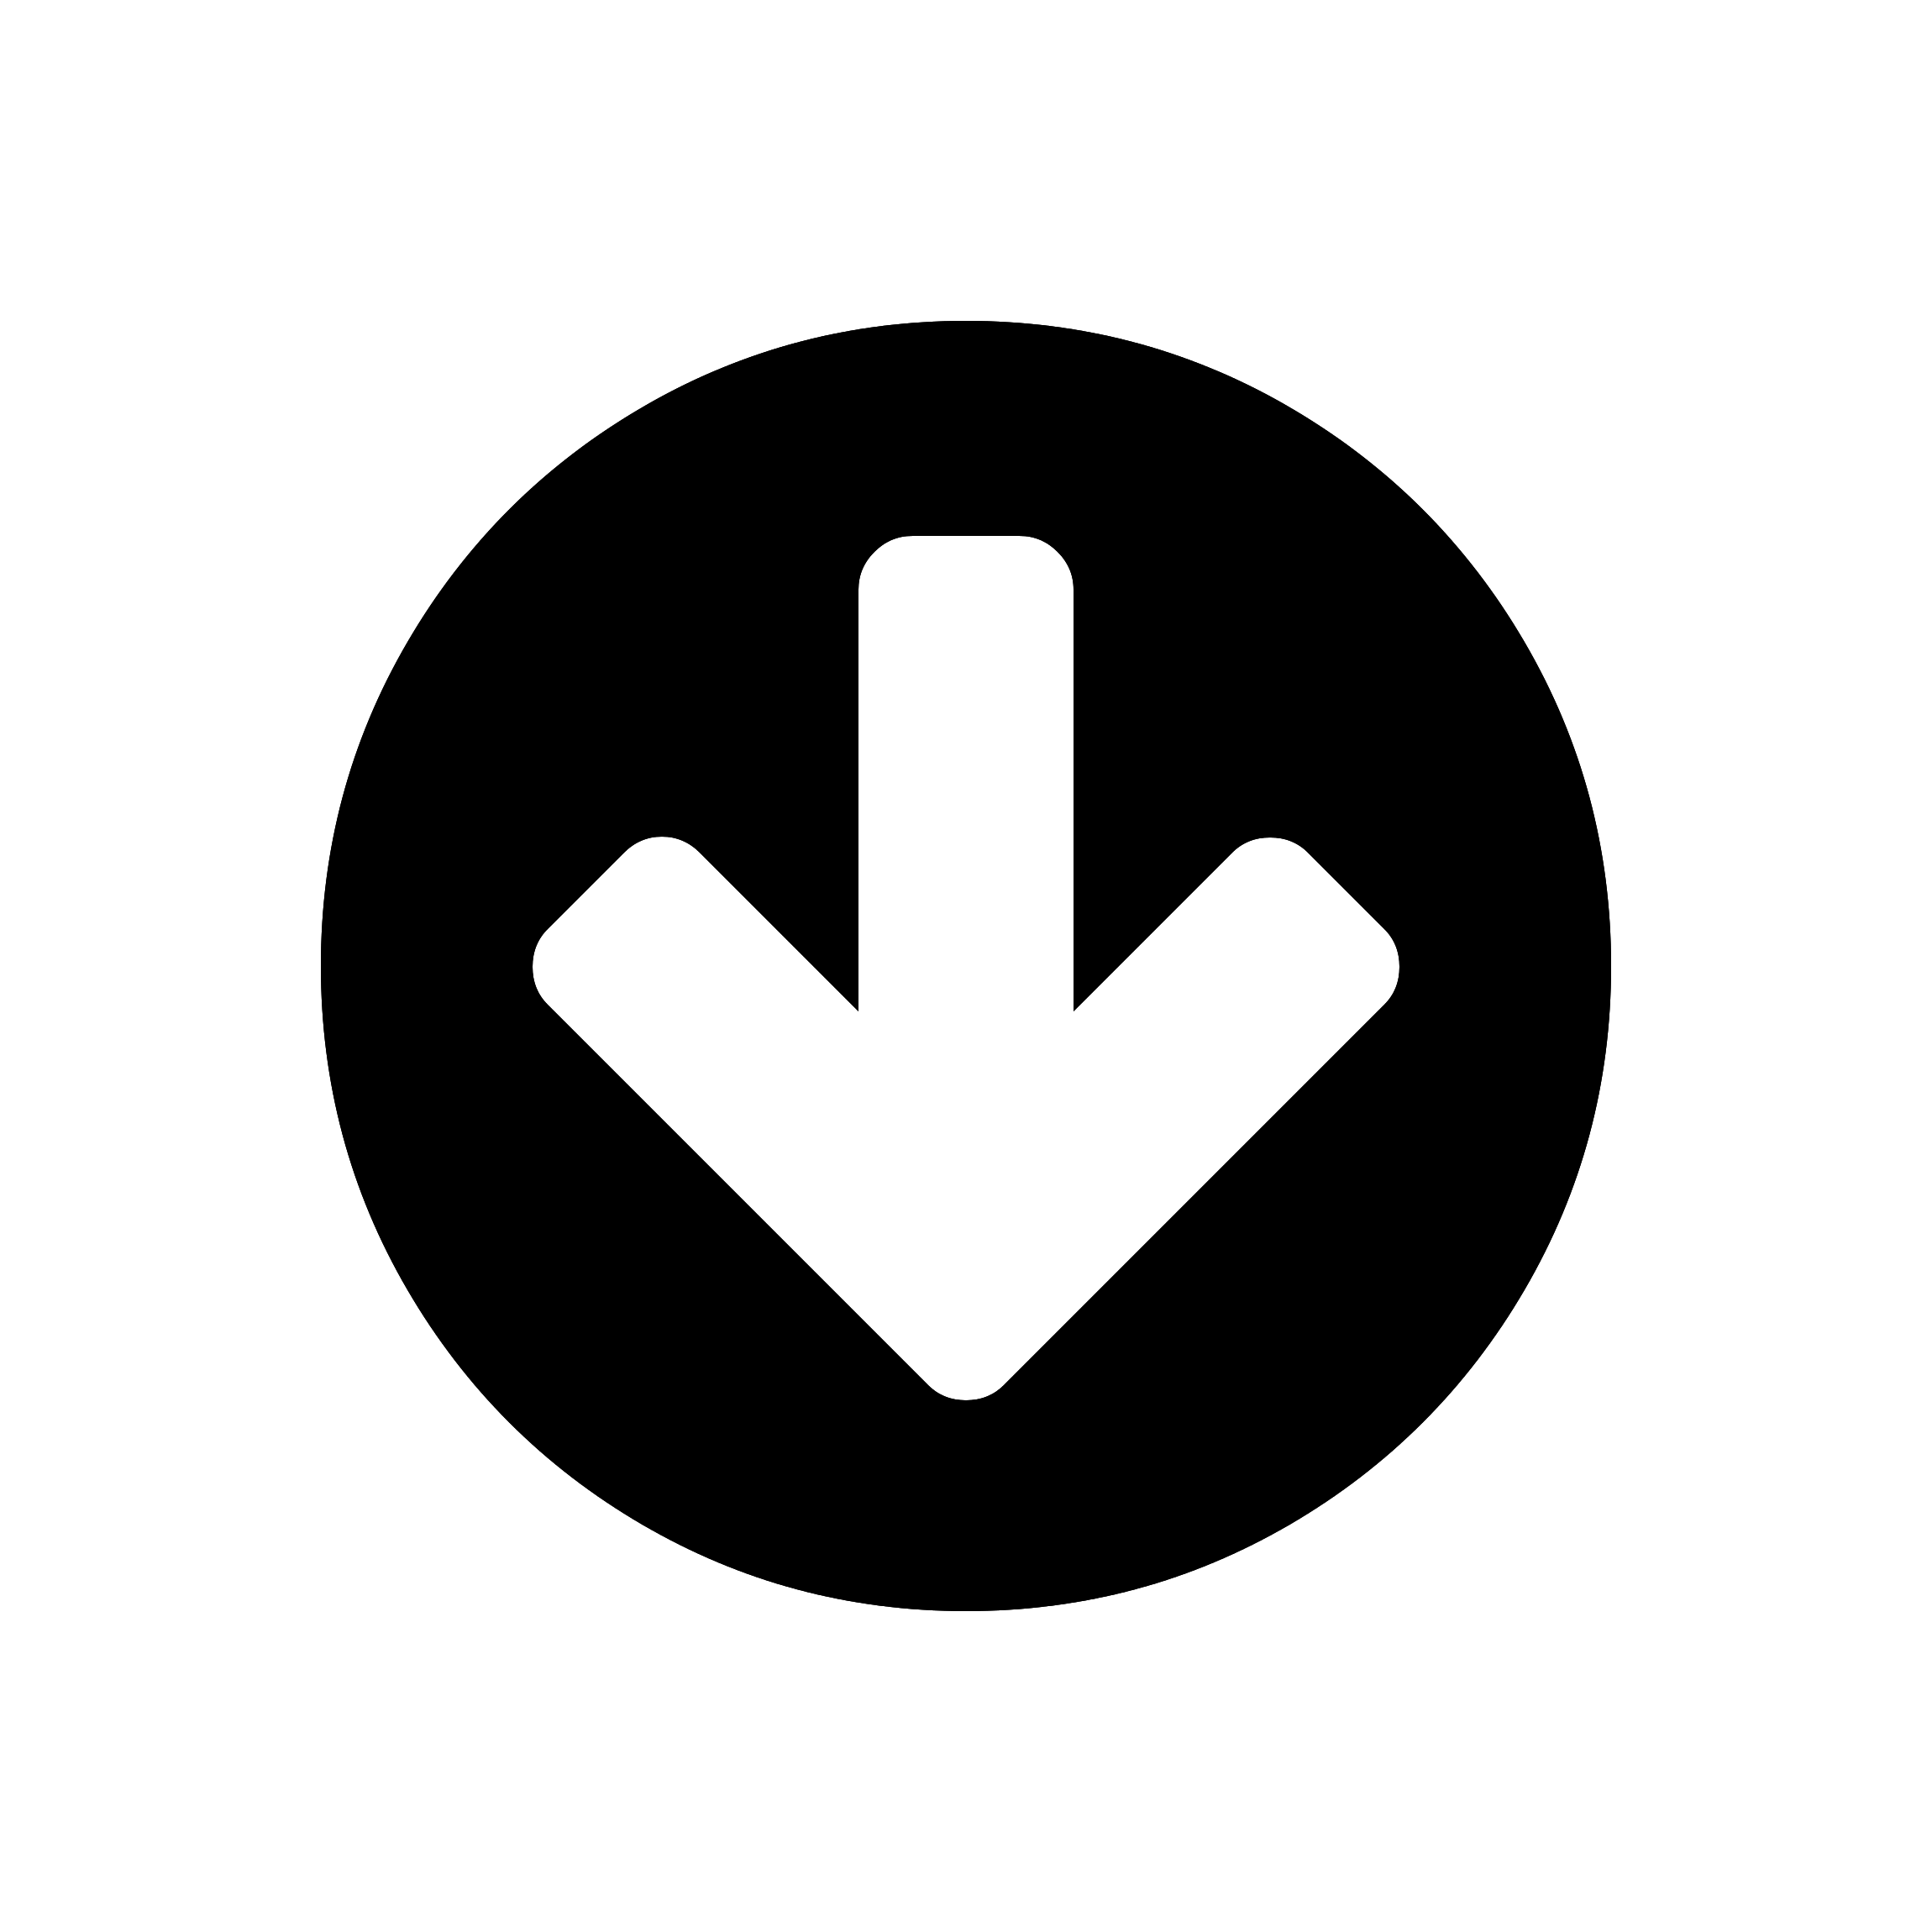 data/images/arrow-circle-down.png